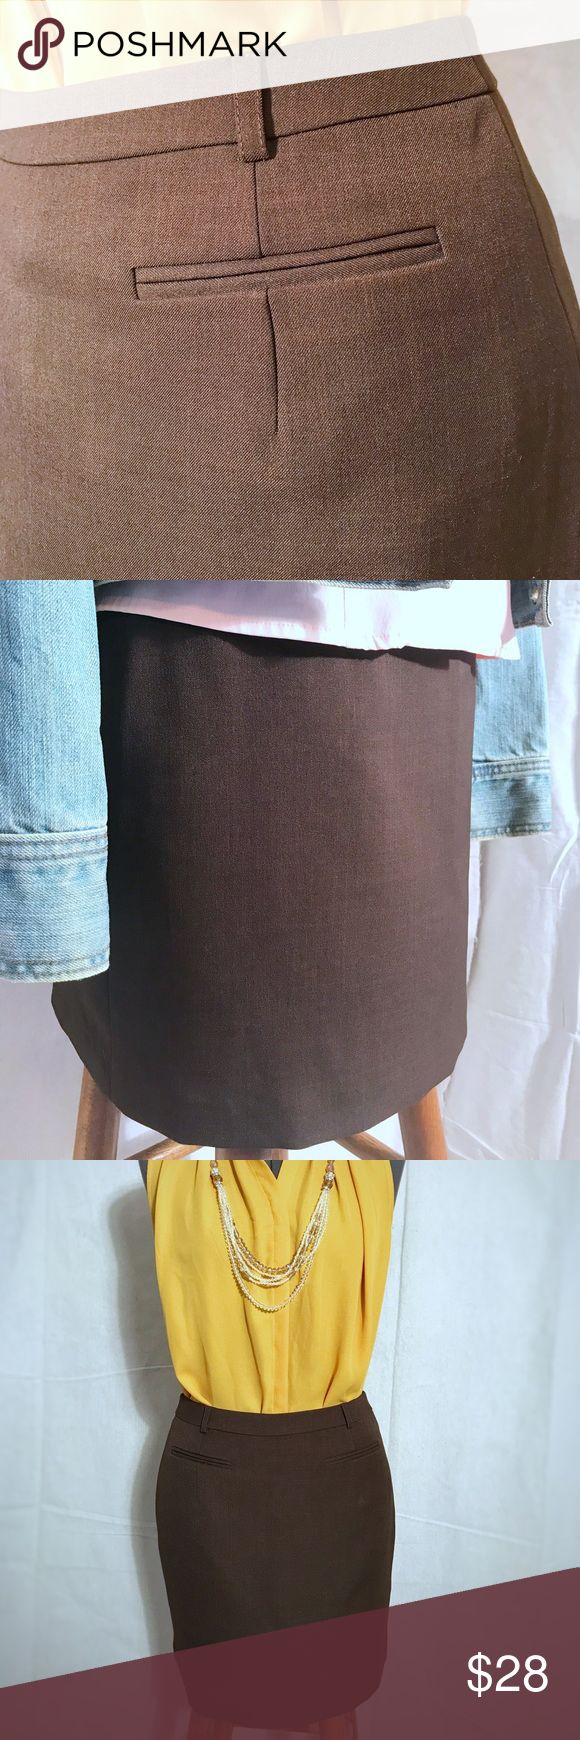 Influence de Naf Naf Skirt Not quite a mini, but definitely hits above the knee. Back zipper and fully lined. The rich brown color is perfect for fall with a great pair of boots! Skirts Midi